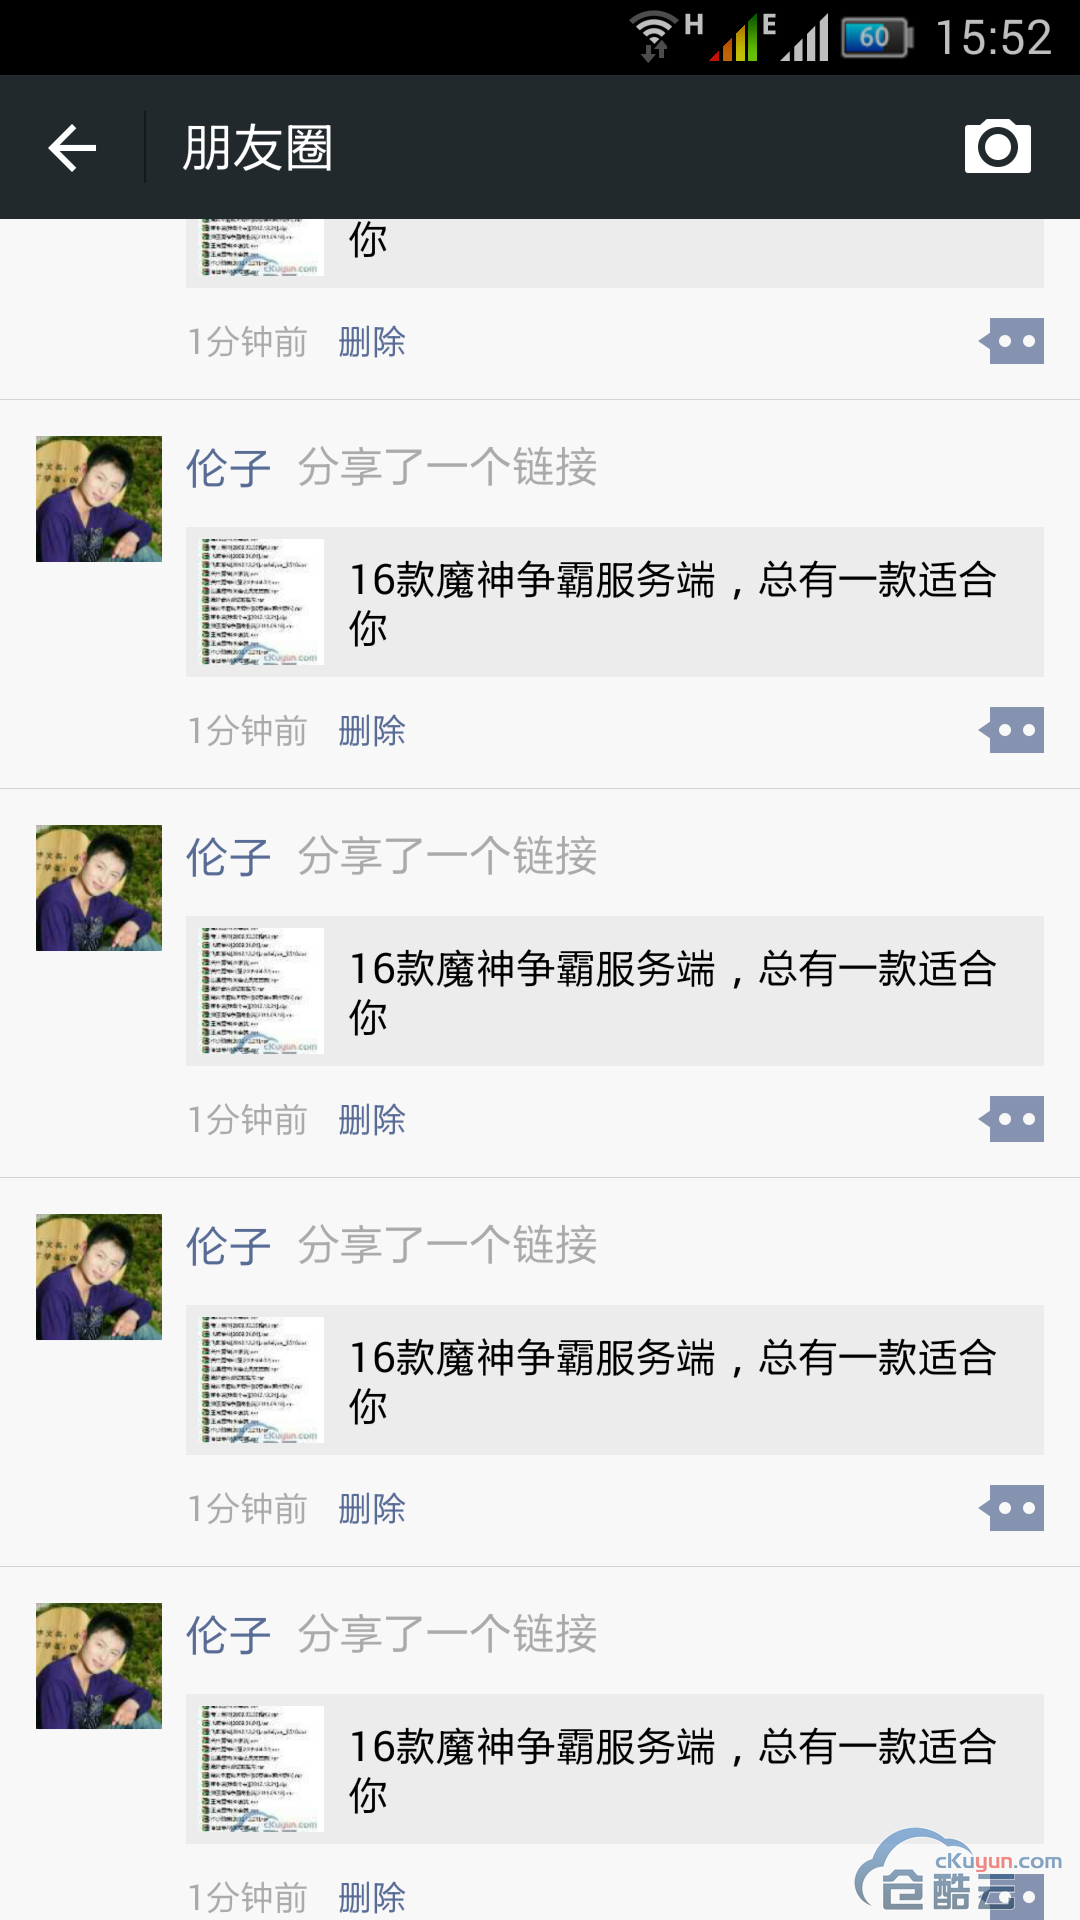 Screenshot_2015-02-08-15-52-30.png